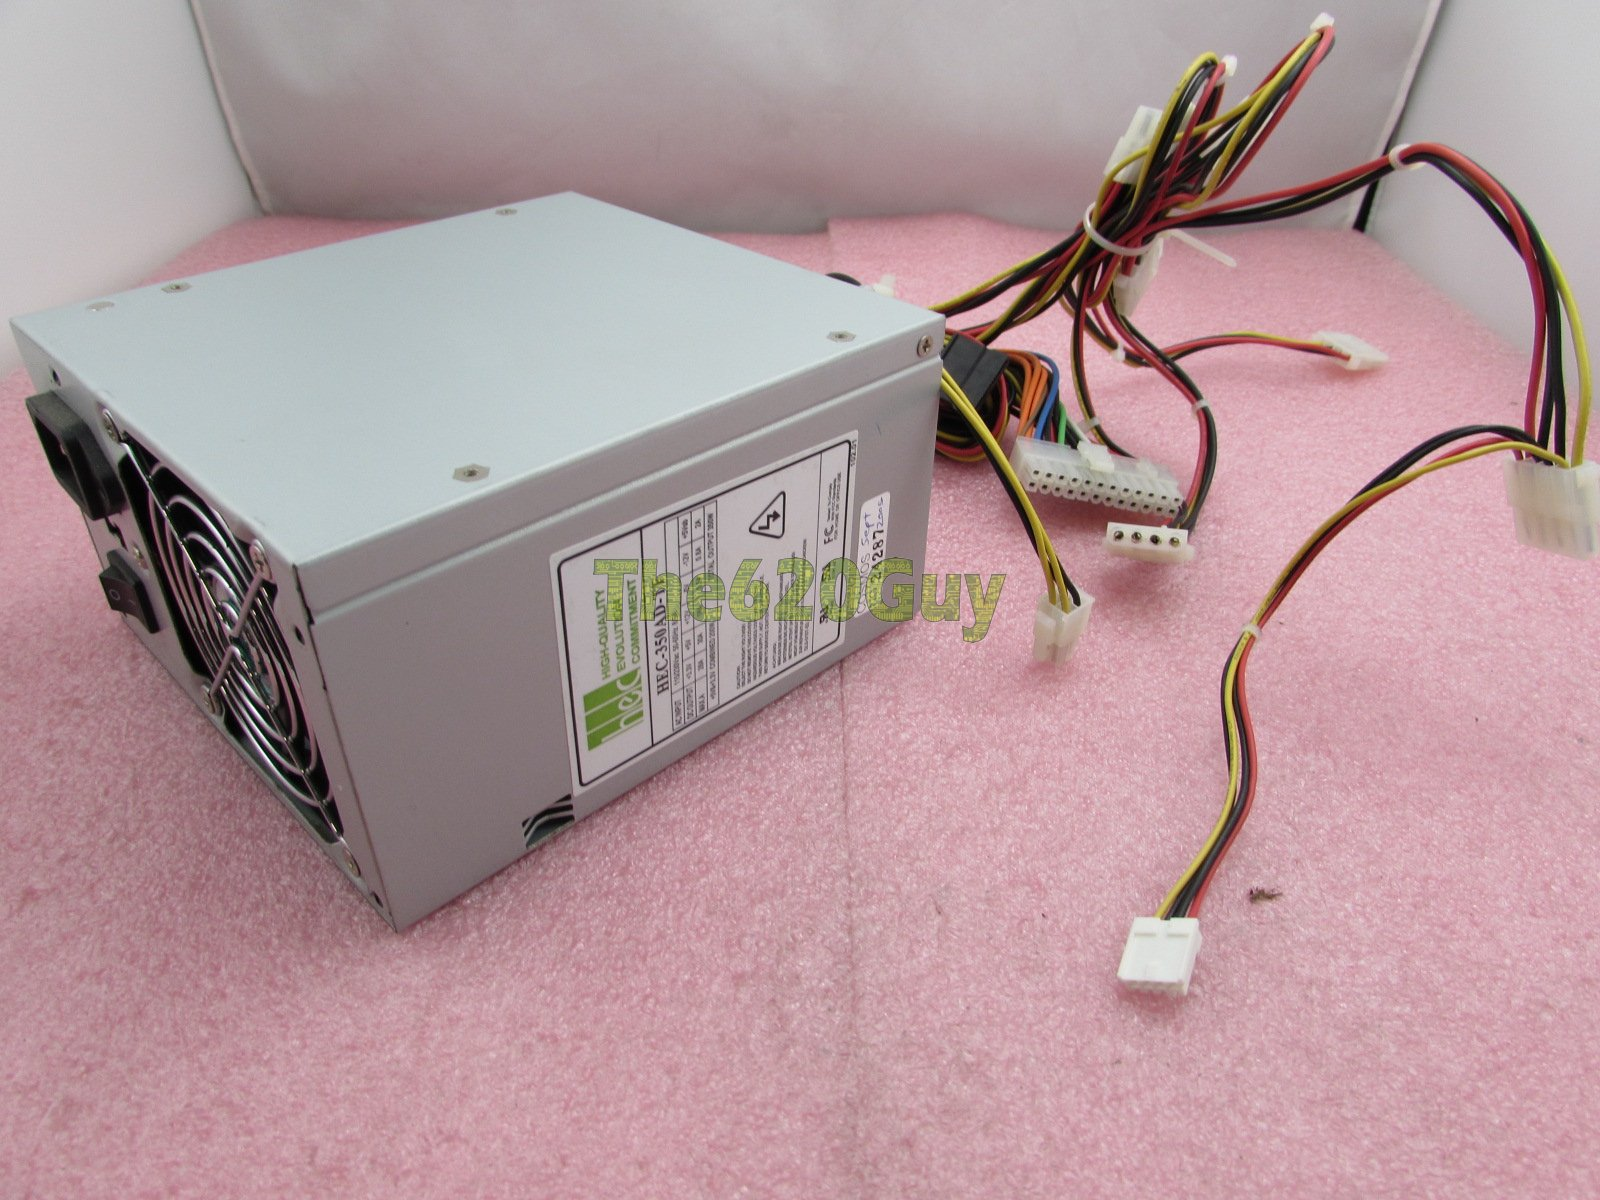 hight resolution of details about hec hec 350ad tf hec350adtf 350 watts 350w switching atx12v power supply psu